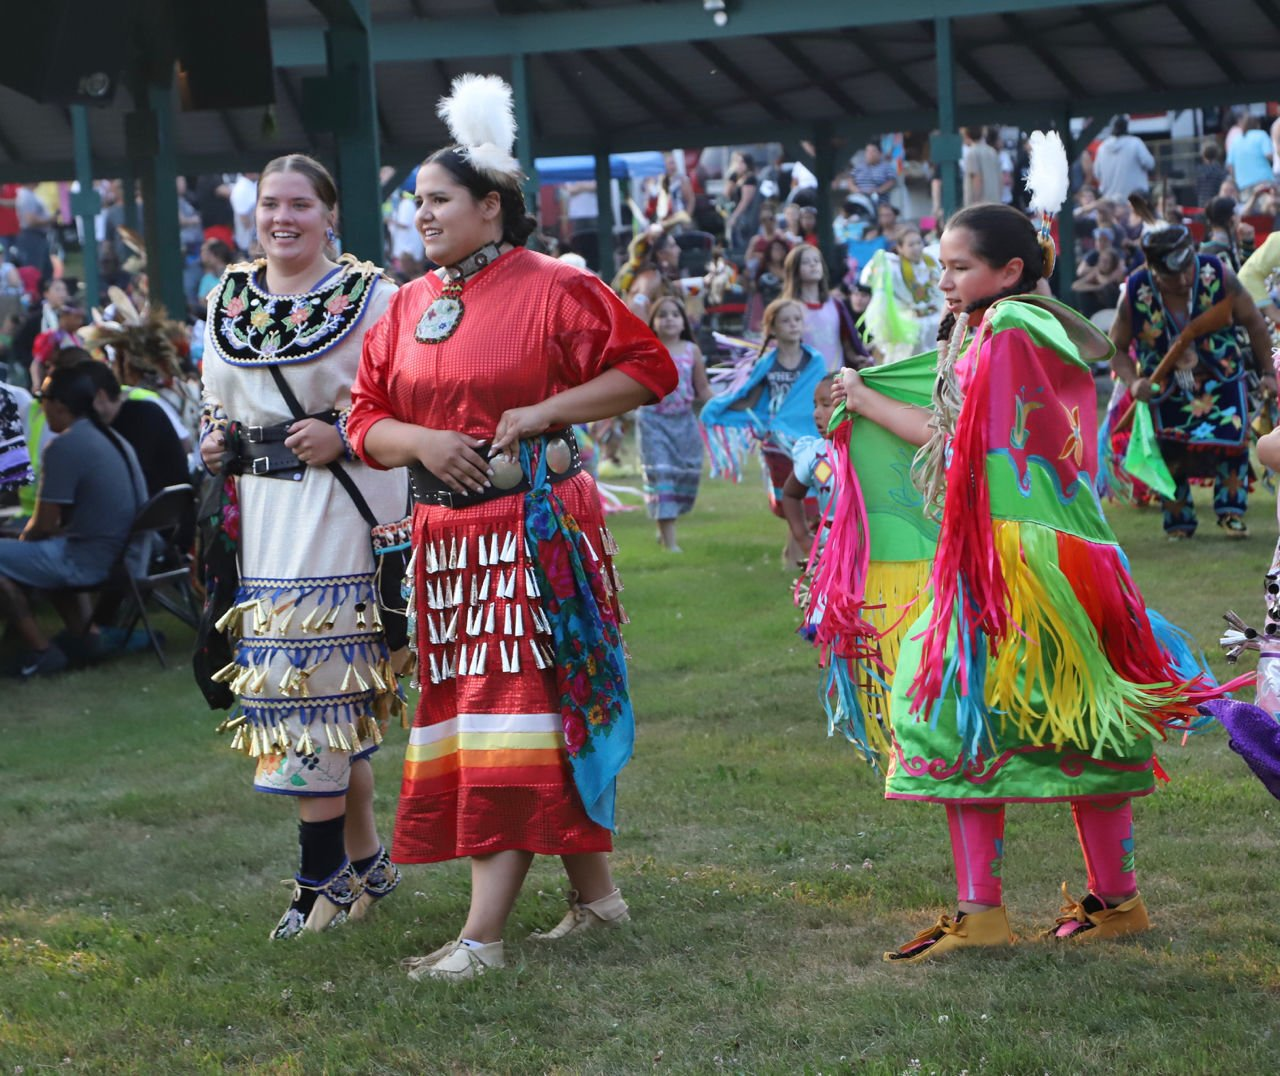 At the Pow Wow